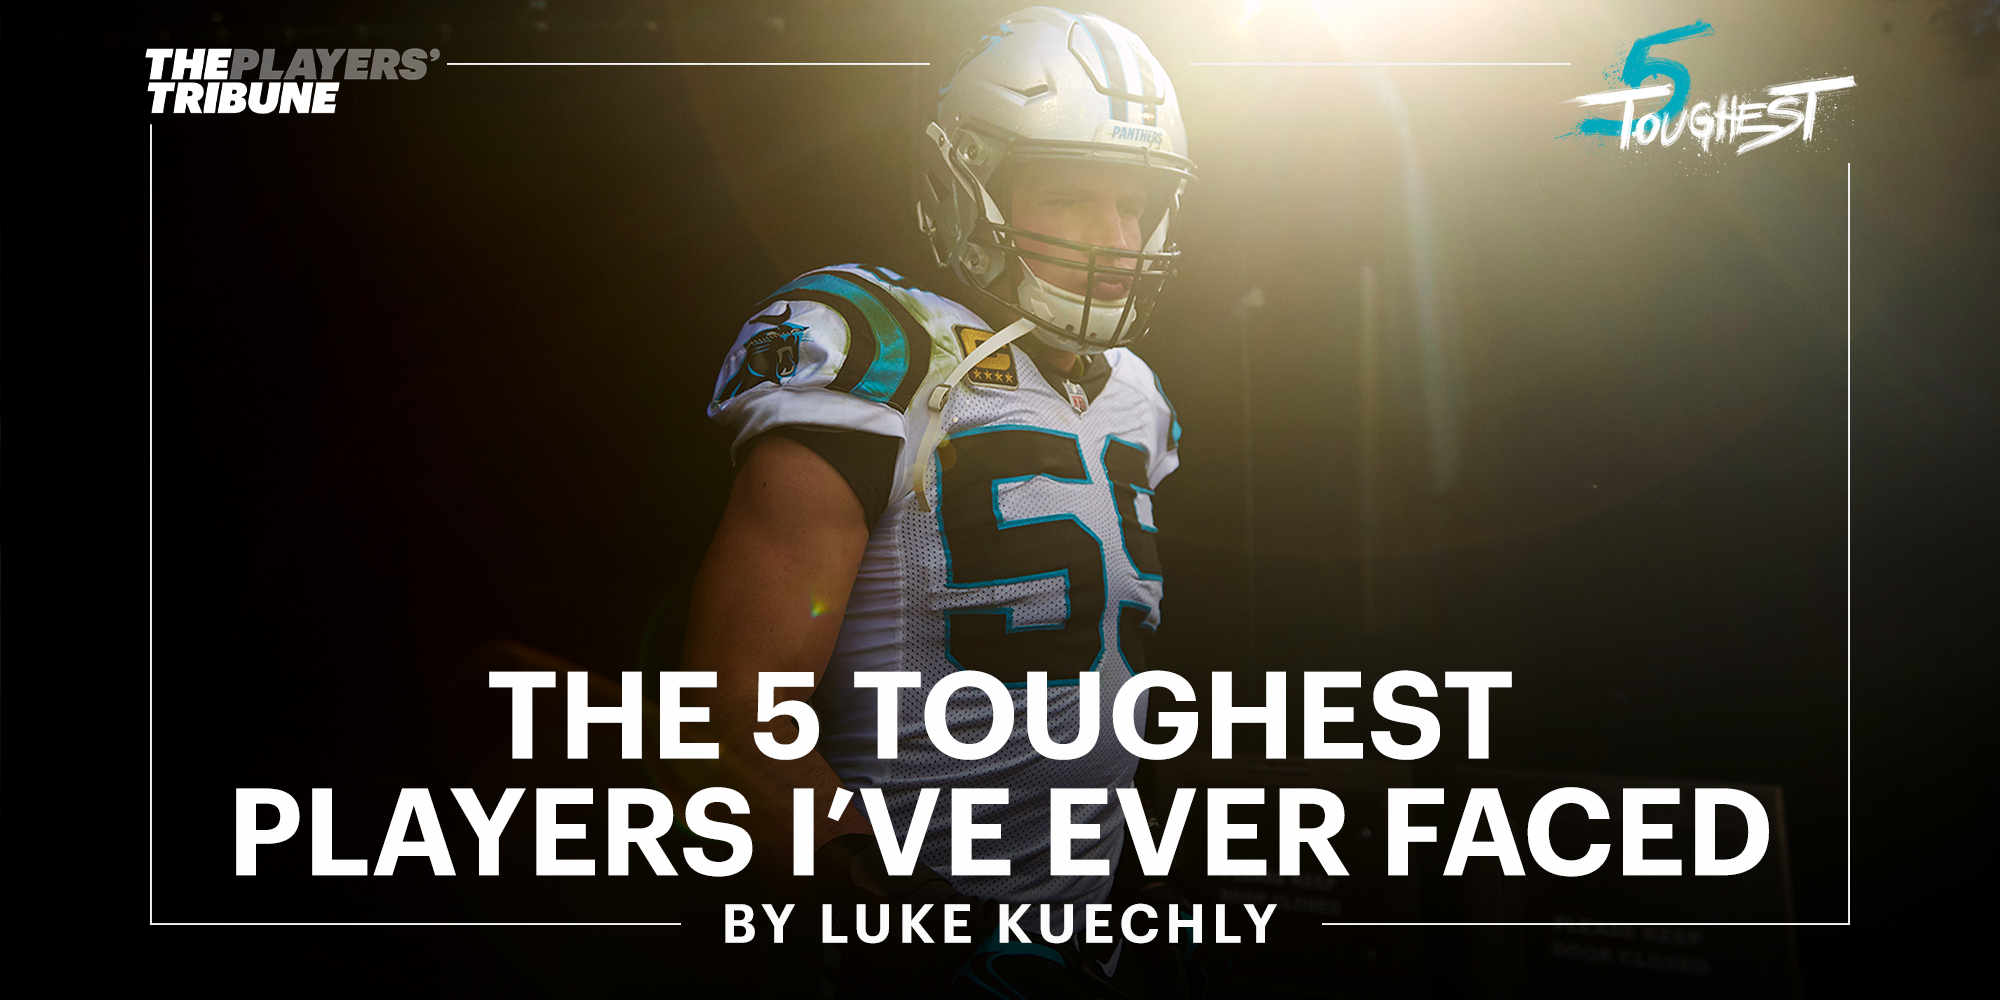 The 5 Toughest Players I've Ever Faced